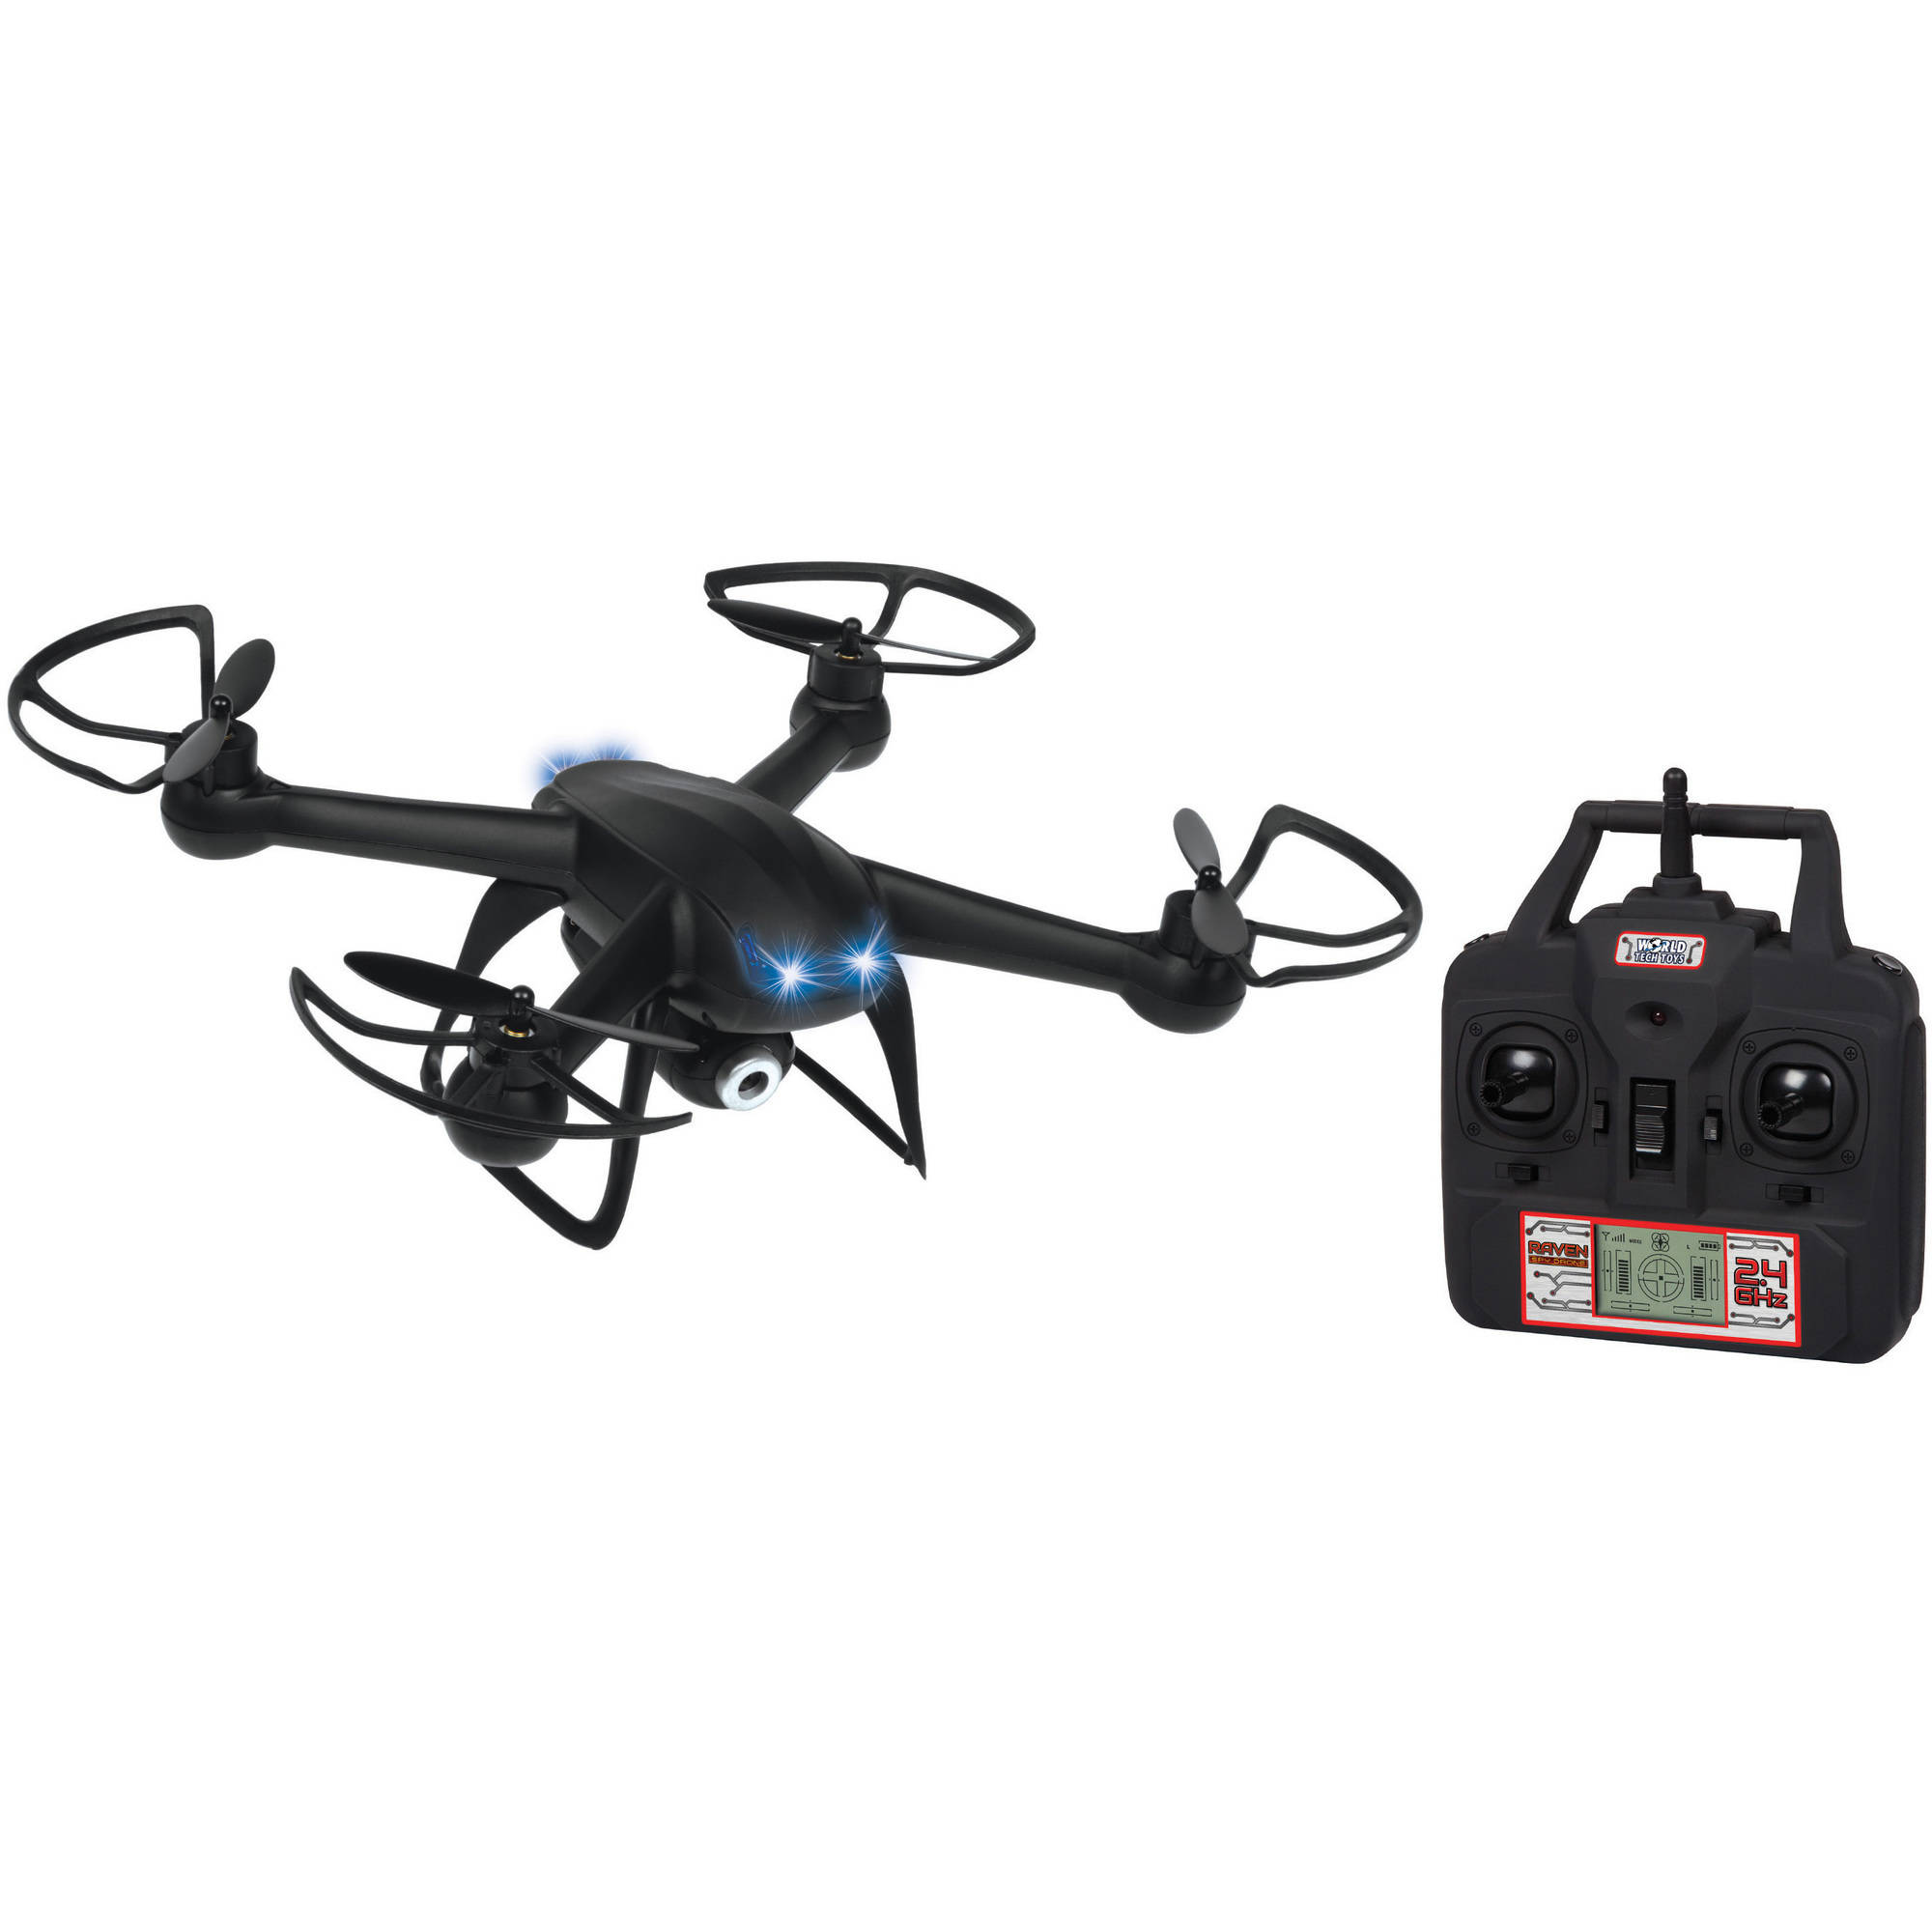 Raven 2.4GHz 4.5-Channel R C Camera Spy Drone by World Tech Toys